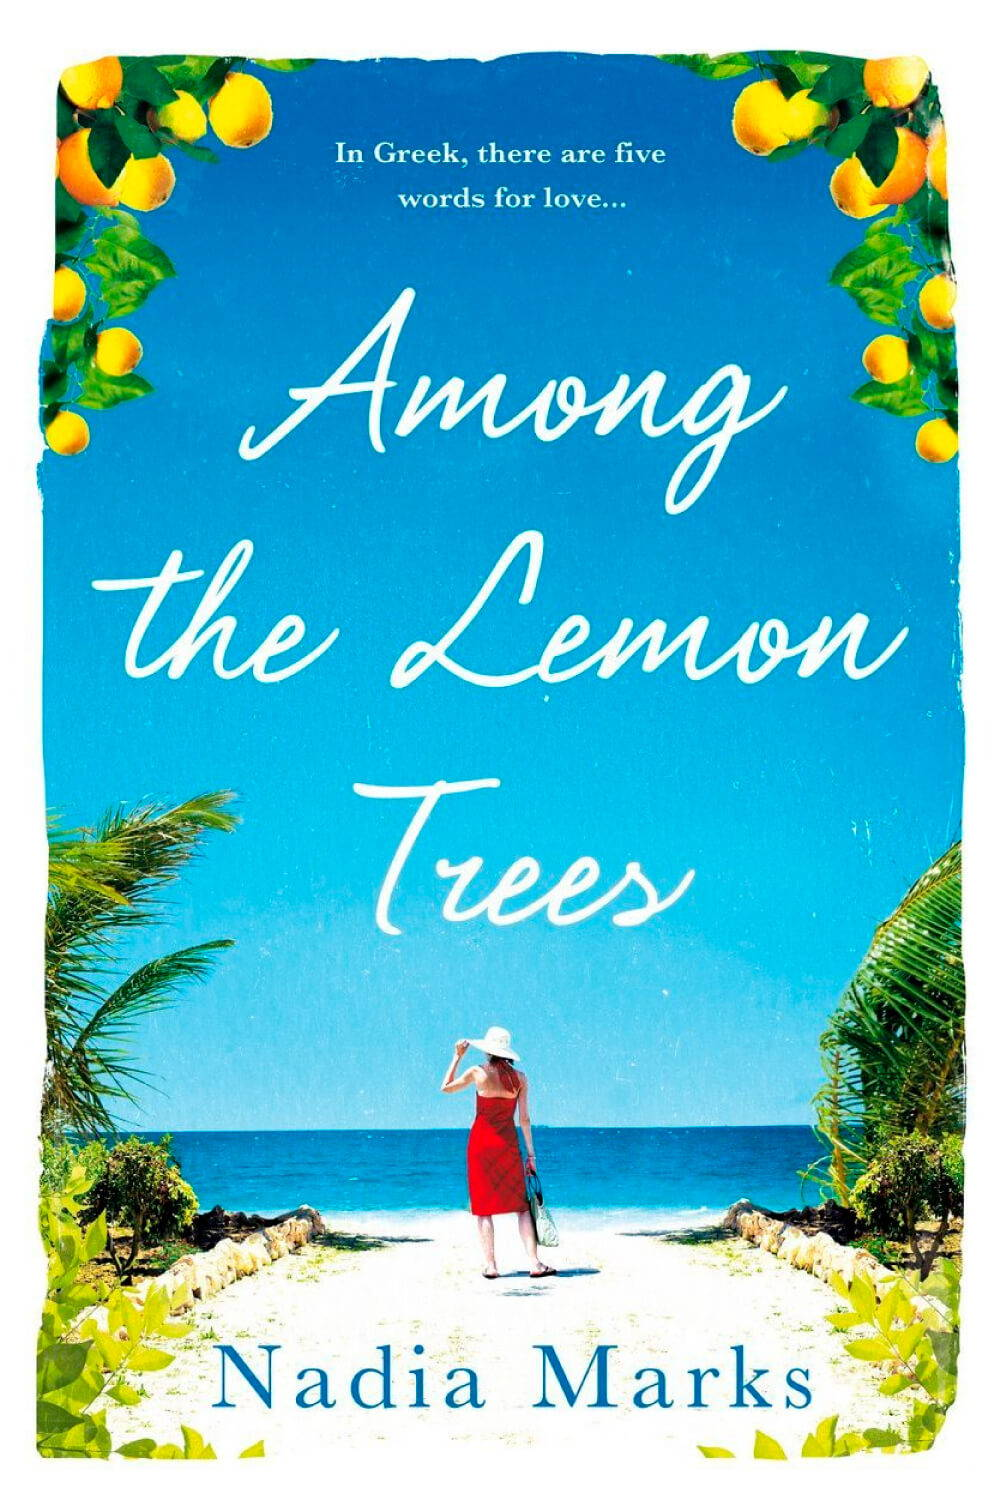 Summer Reading List 2018 Among the lemon trees